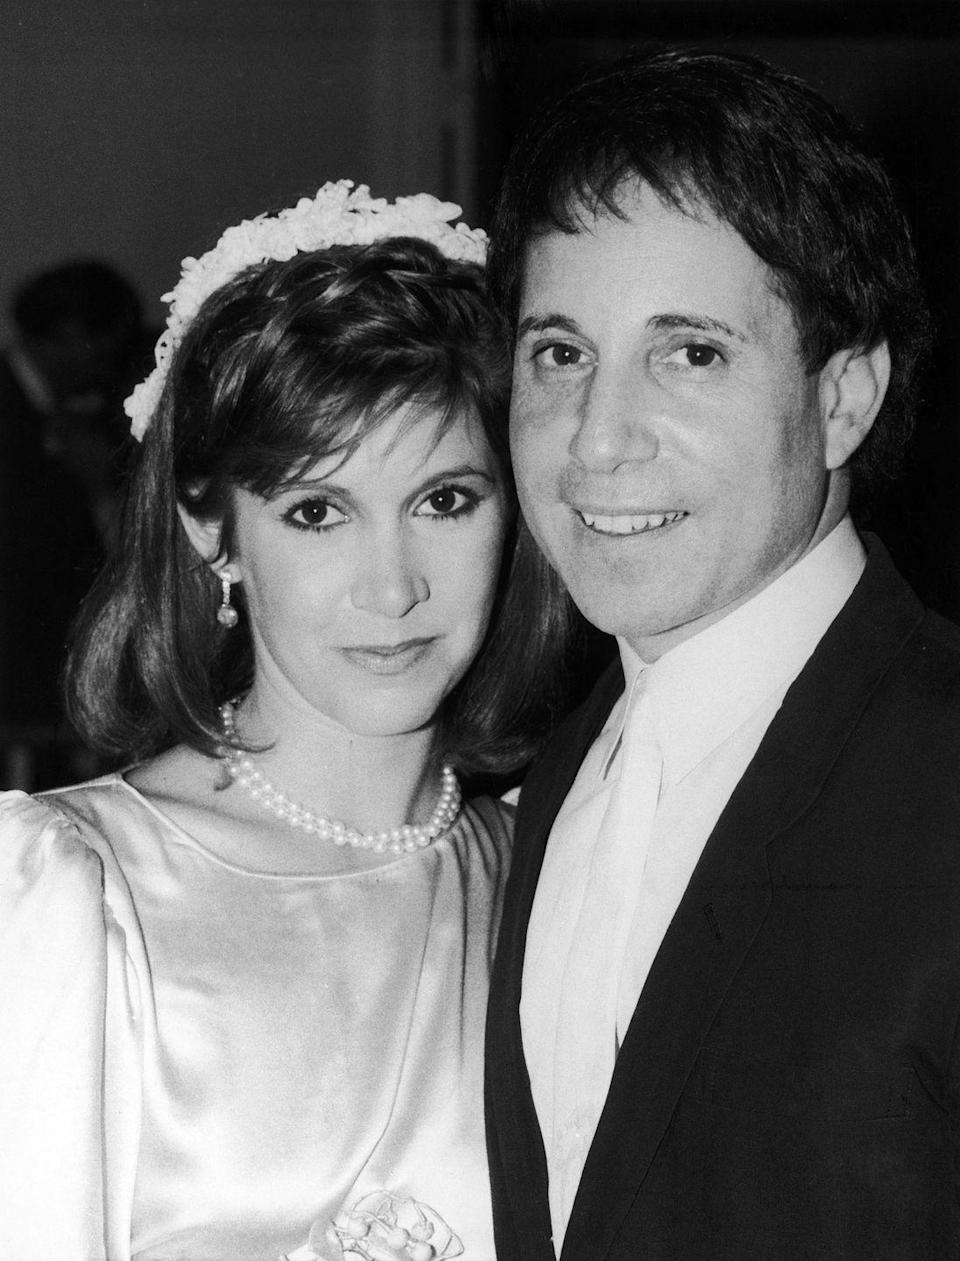 "<p>Late actress Carrie Fisher <a href=""http://www.eonline.com/news/818391/carrie-fisher-s-ex-paul-simon-pays-tribute-to-her-after-her-death-inside-their-turbulent-relationship"" rel=""nofollow noopener"" target=""_blank"" data-ylk=""slk:married singer Paul Simon"" class=""link rapid-noclick-resp"">married singer Paul Simon</a> in August 1983, only to get quickly divorced the next summer due to issues with substance abuse. The relationship between the two was turbulent, and they continued to date on-and-off after their divorce. </p>"